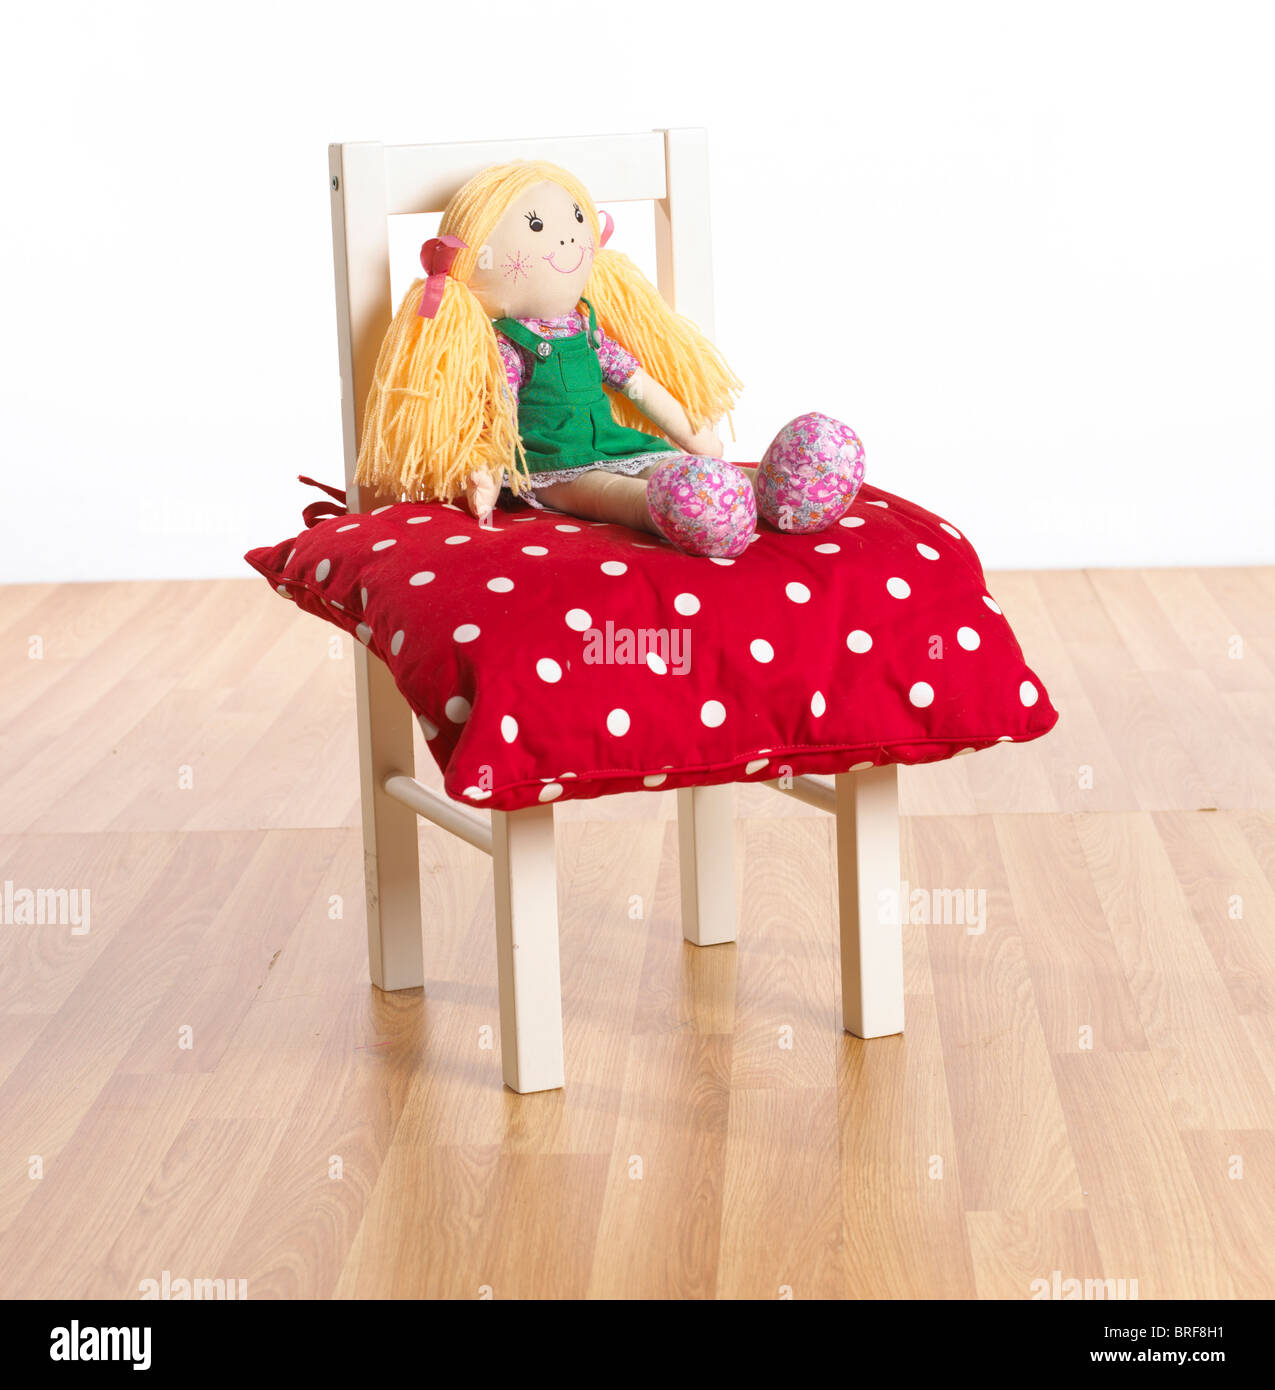 Rag doll sitting on red polka dot cushion on childs chair Stock Photo